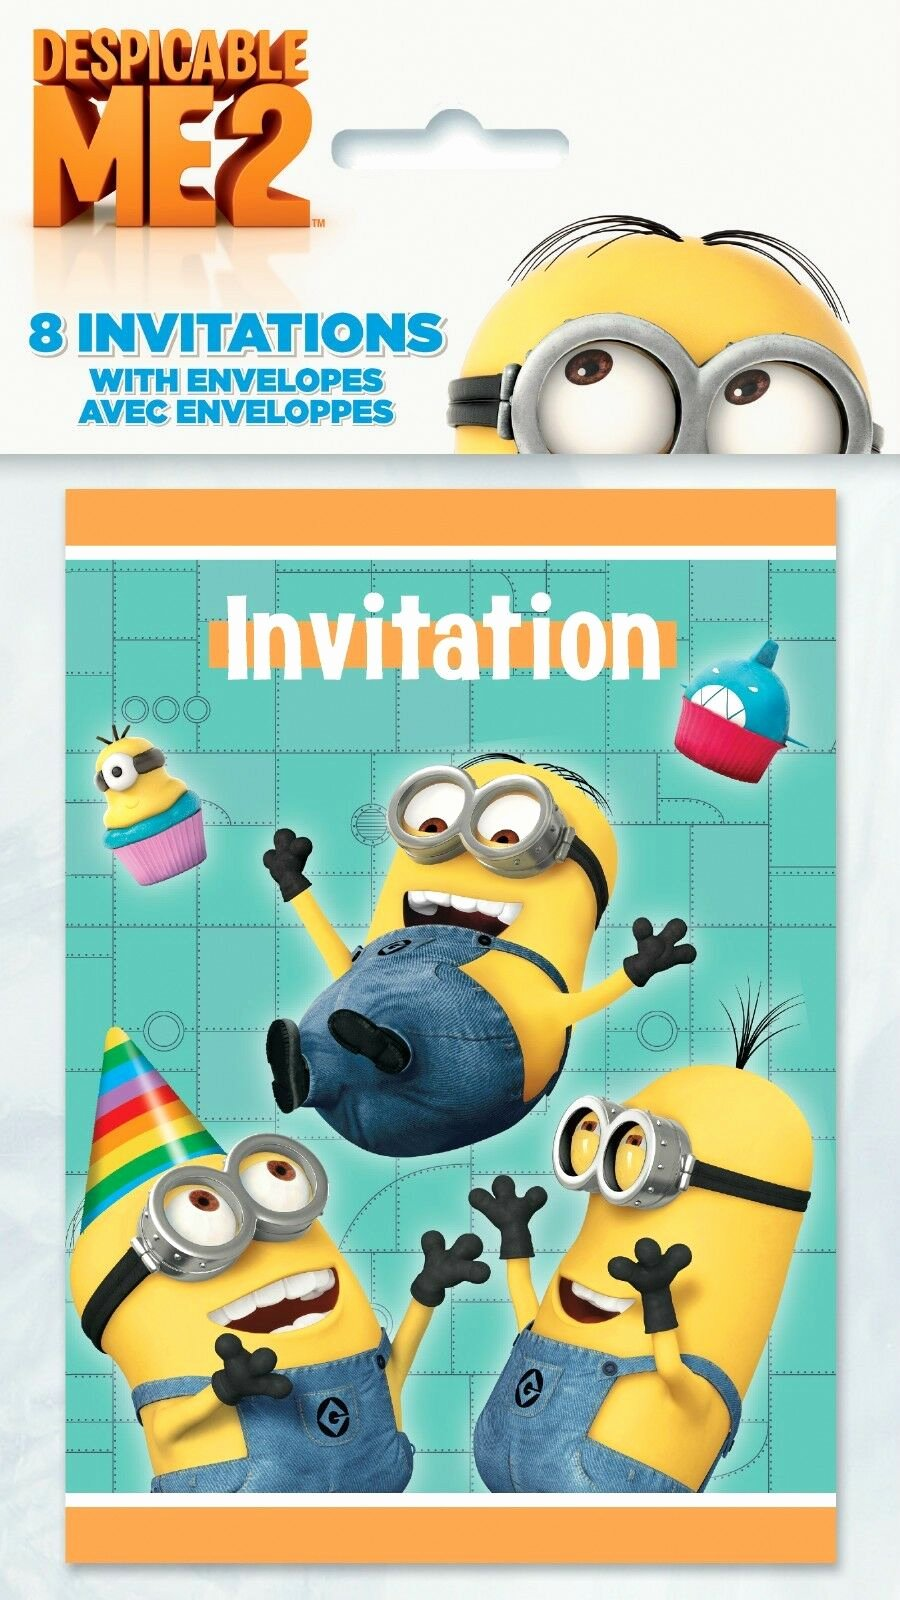 Minions Birthday Invitation Template Best Of Despicable Me 2 Minions Party Birthday Invitations with